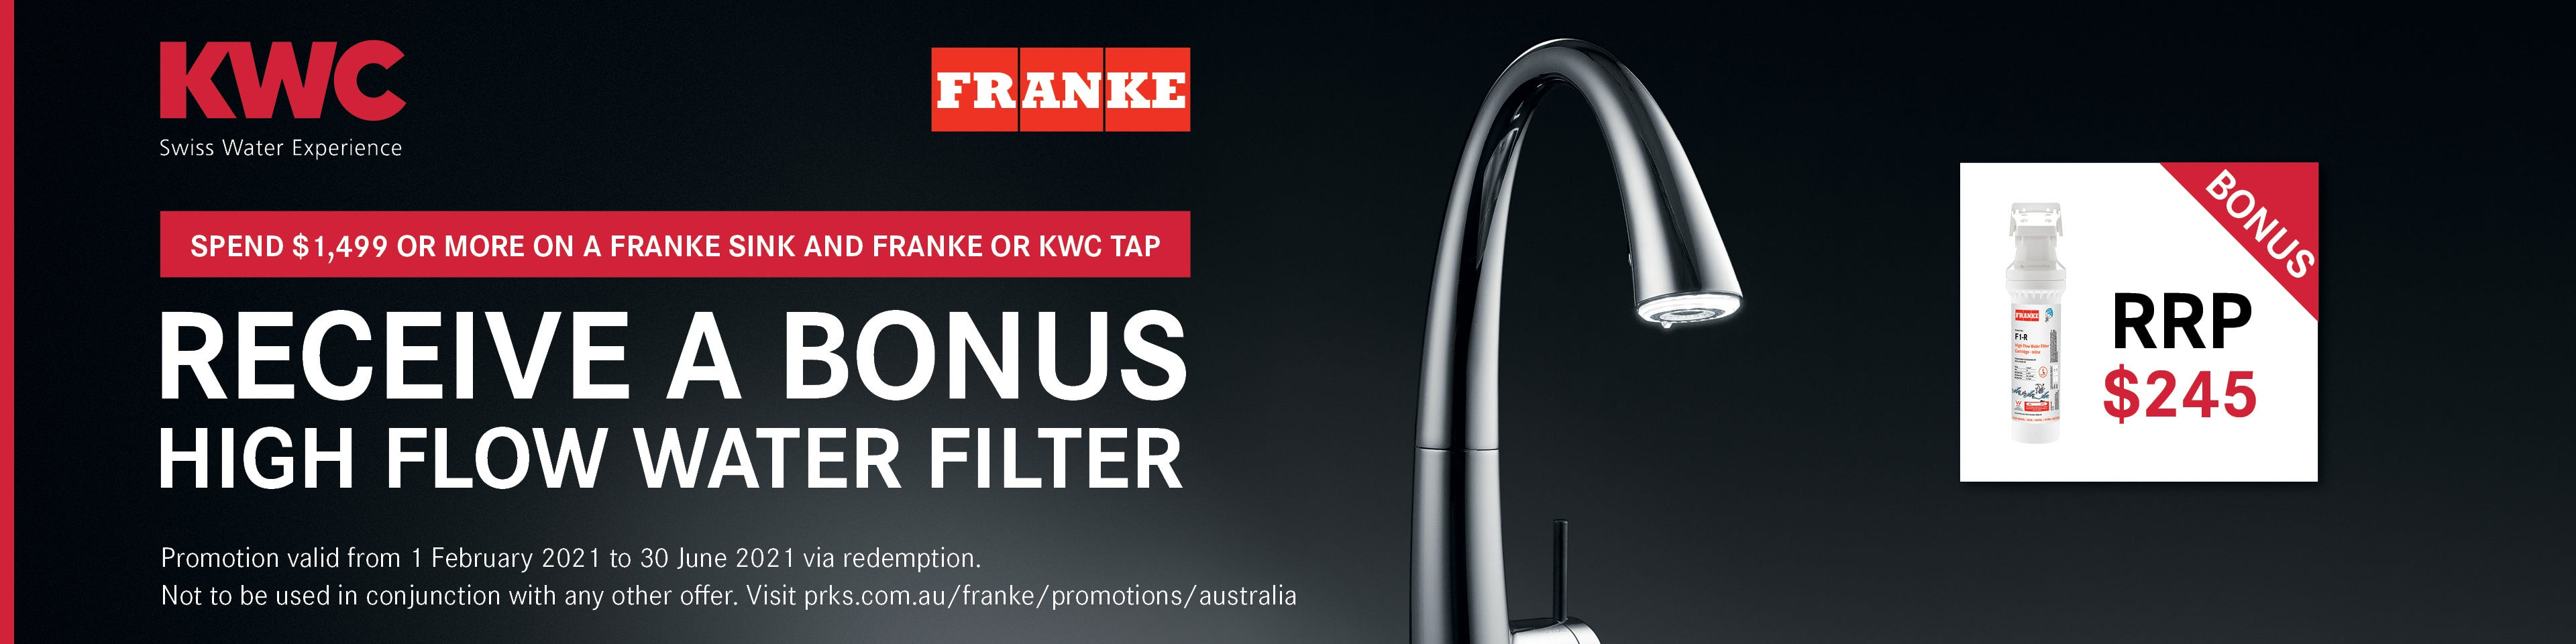 Bonus High Flow Water Filter with Franke Sink & KWC Tap Purchase ($1,499+). Conditions apply - ENDS 30/06/21